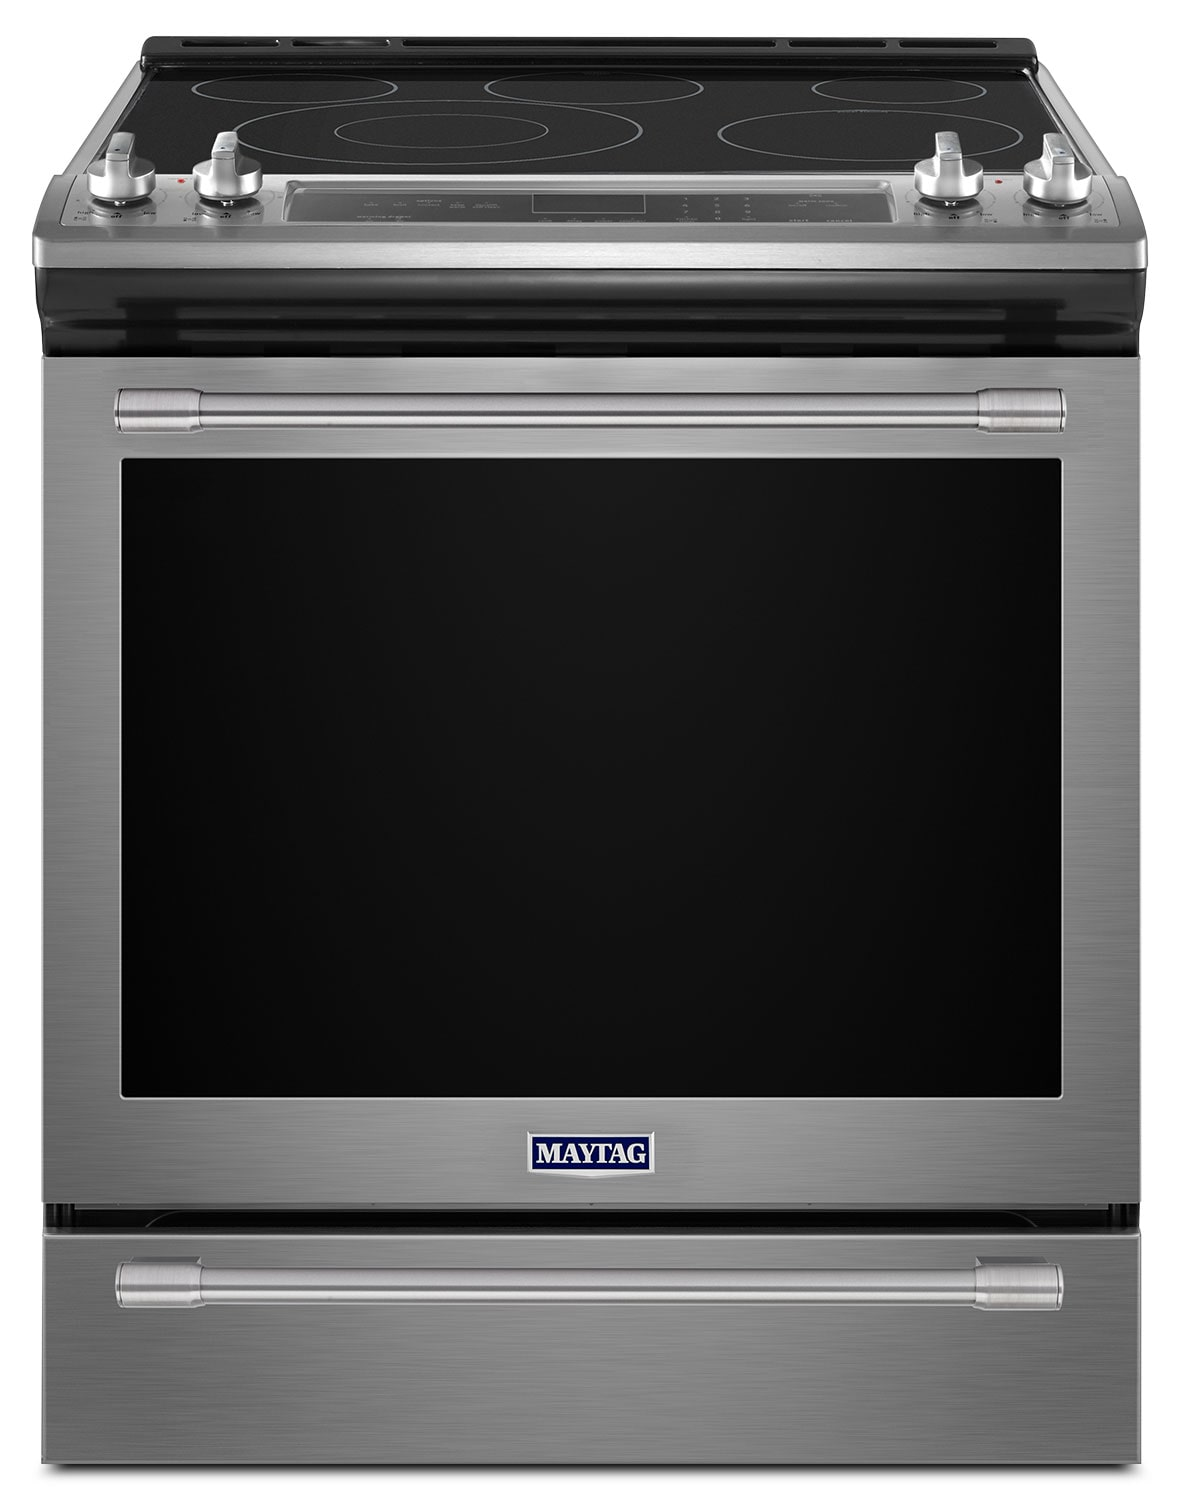 Maytag 6.4 Cu. Ft. Slide-In Electric Range – YMES8800FZ